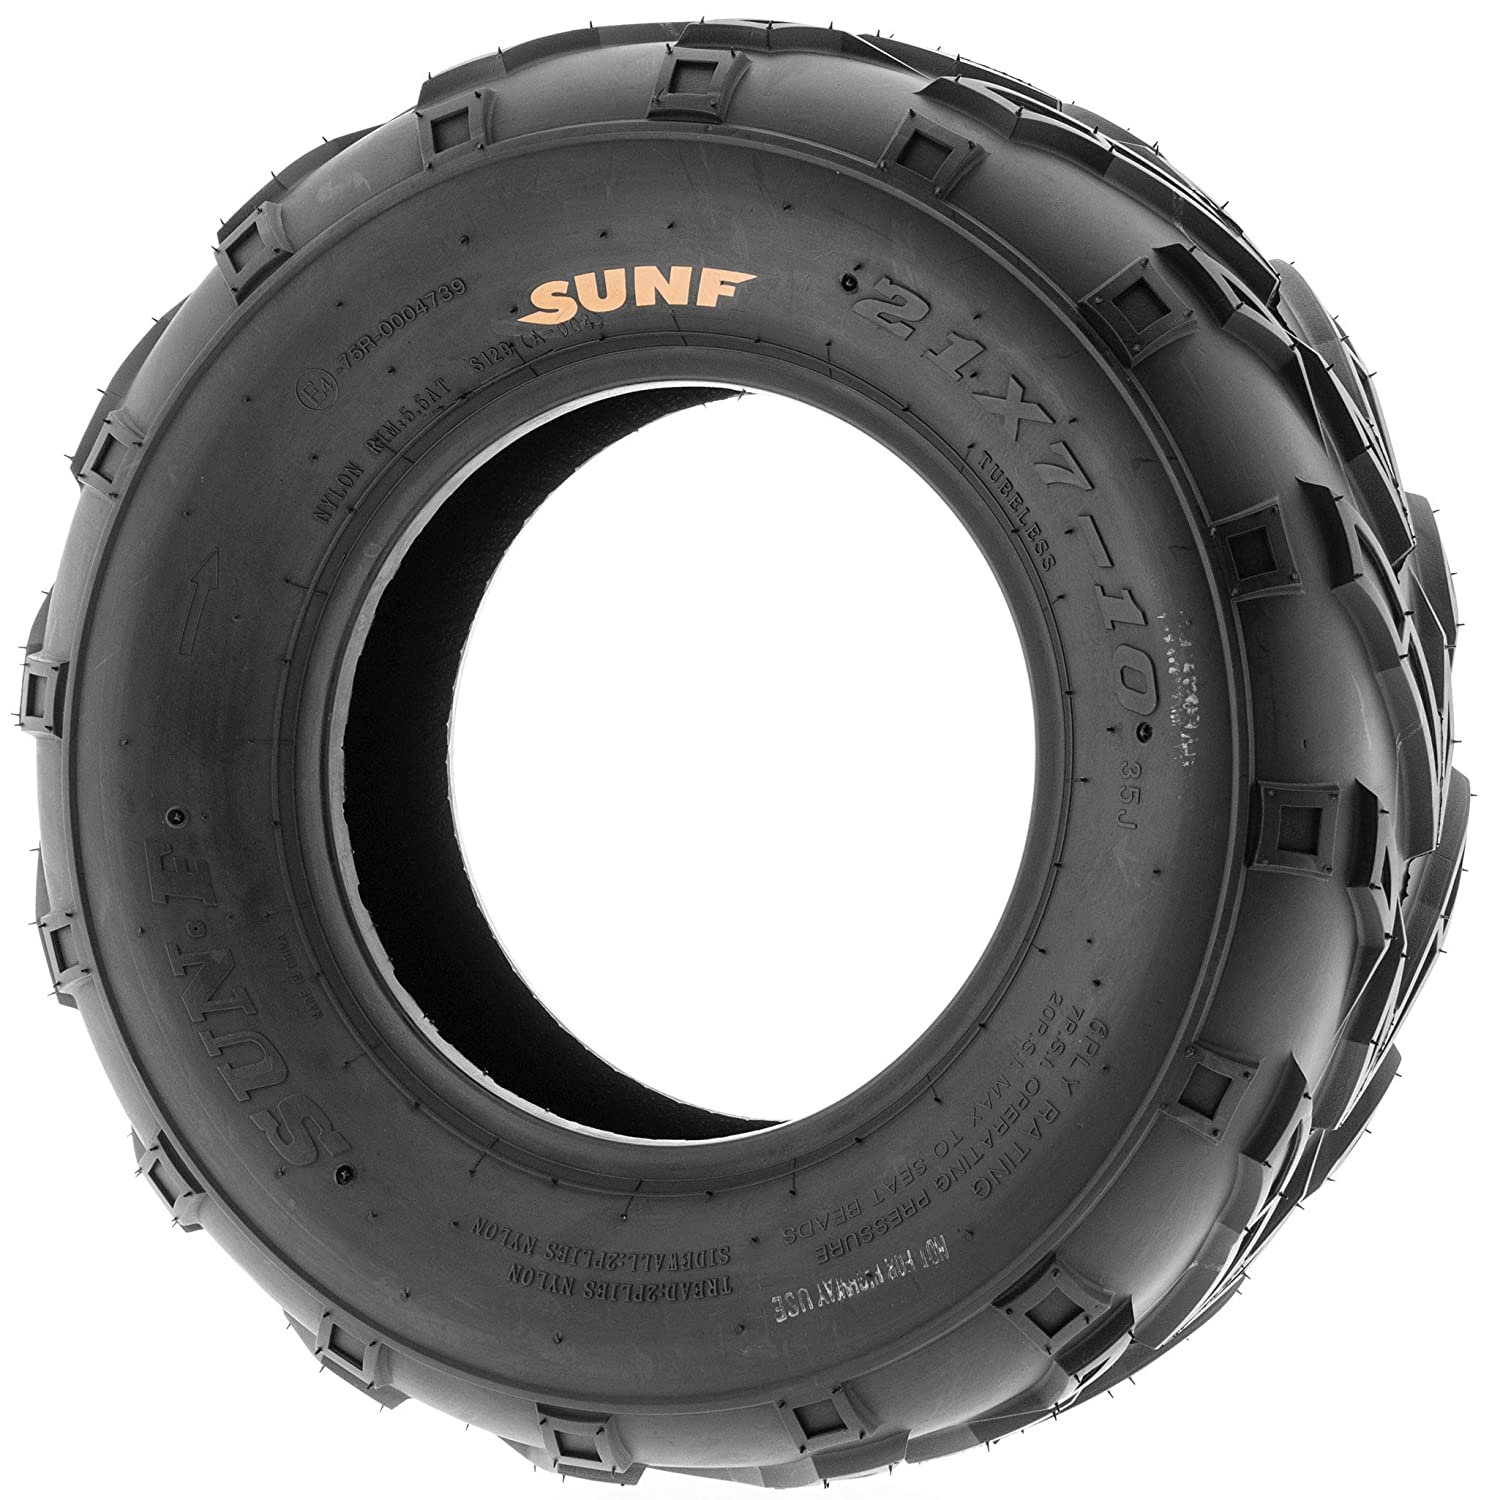 Trail /& Track 6 PR Pair of 2 SunF A004 ATV UTV 21x7-10 AT off-road Tires Tubeless